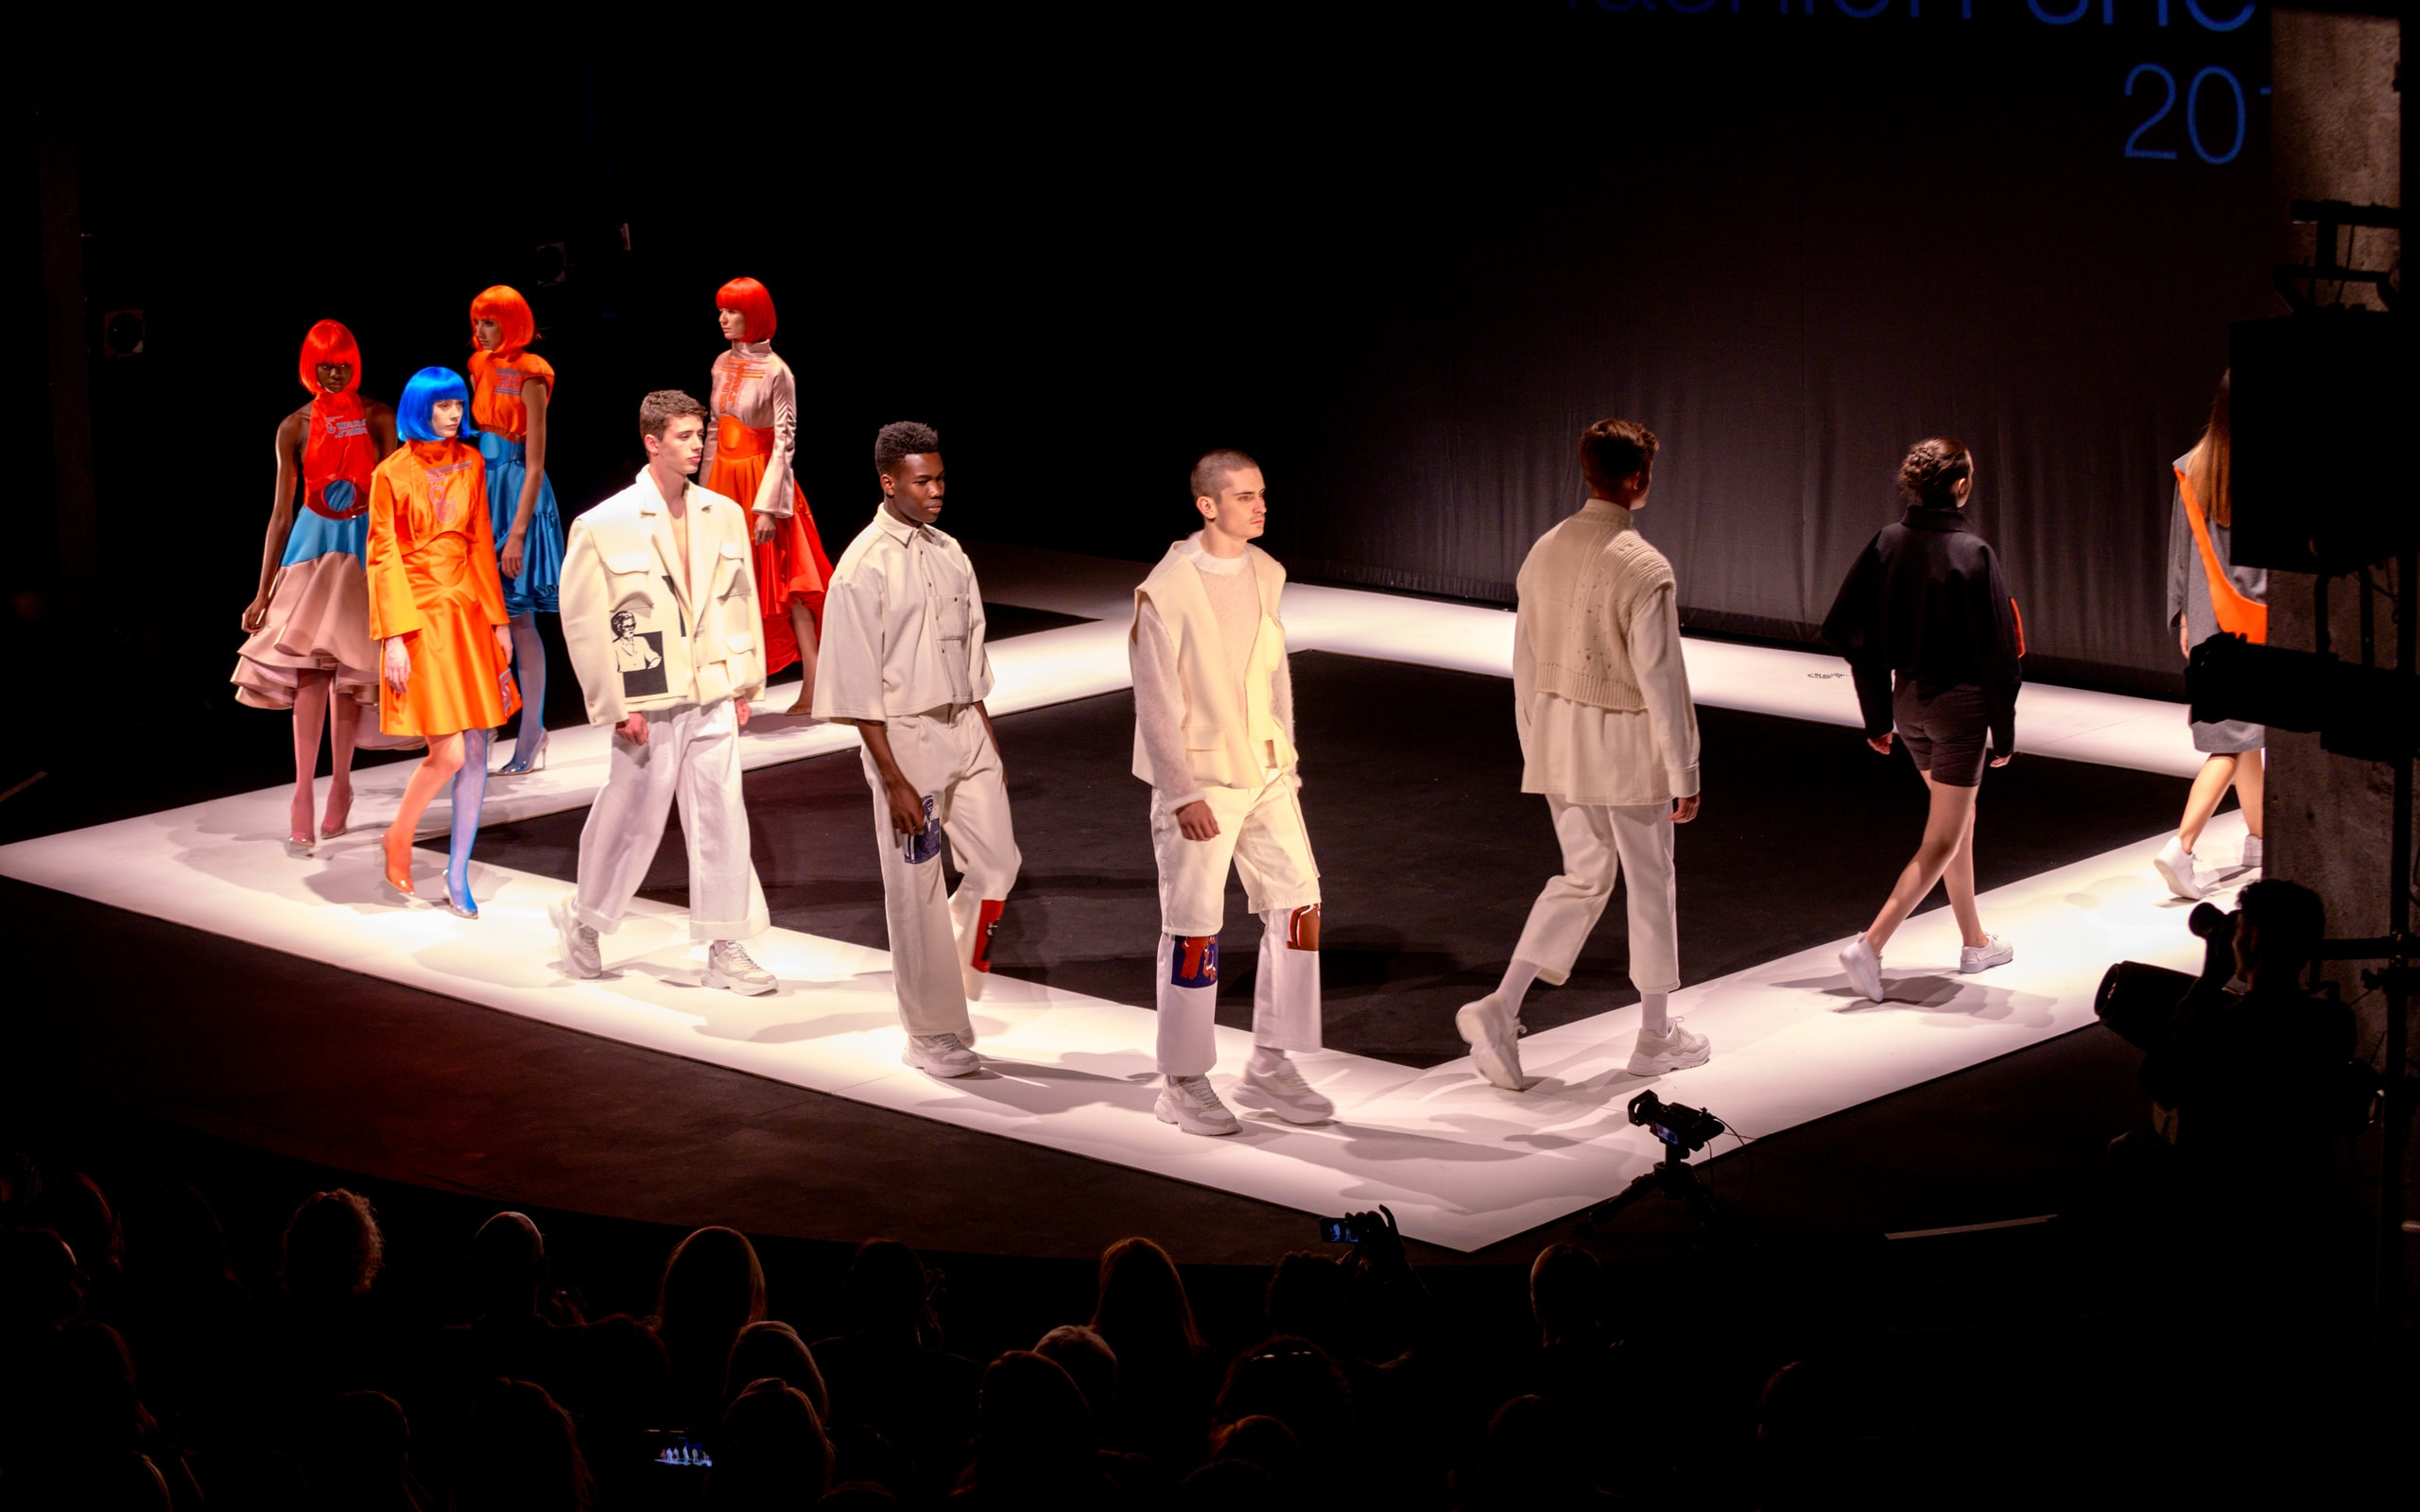 Models walk along a catwalk to showcase student collections